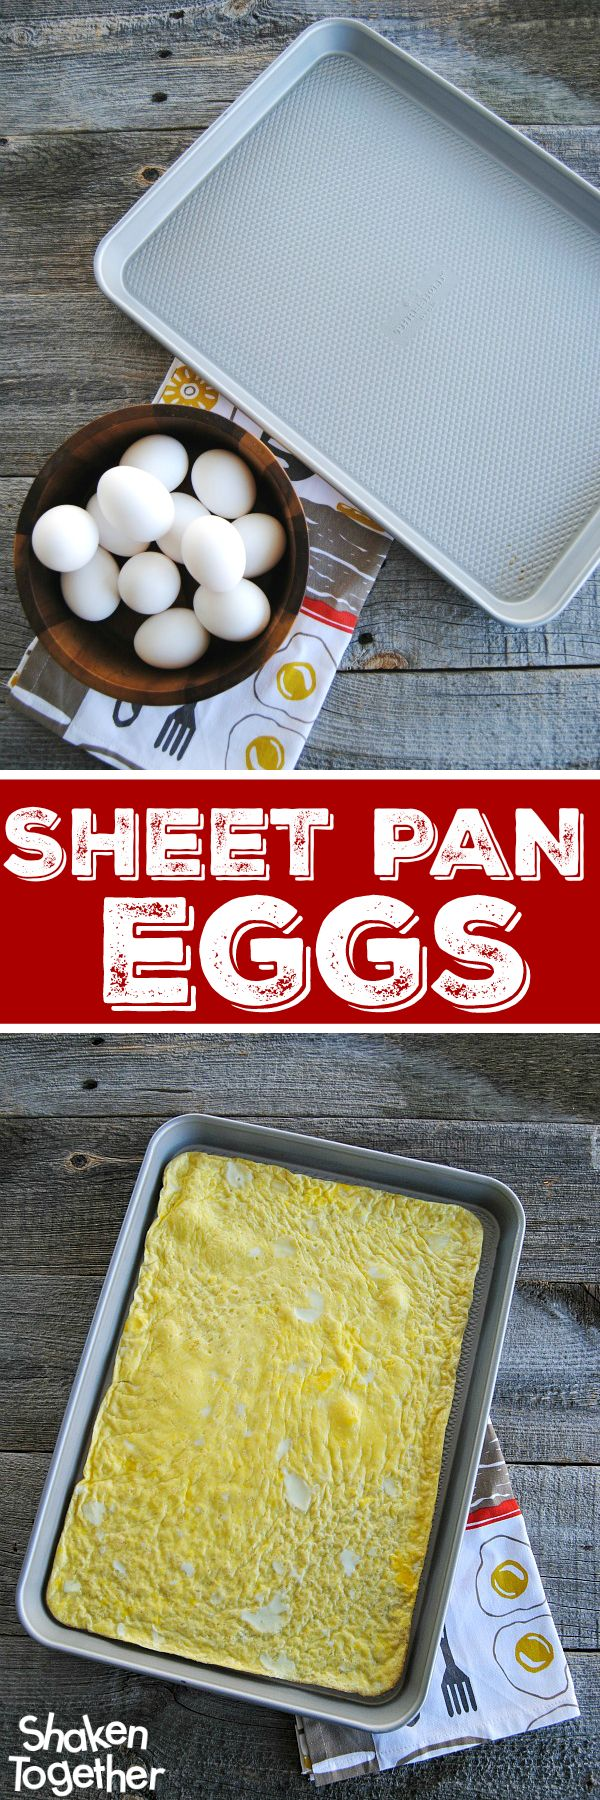 Need to make eggs for a crowd? Want to prepare a big batch of make ahead breakfast sandwiches? I'll show you how to cook 12 eggs quick ... make Sheet Pan Eggs!